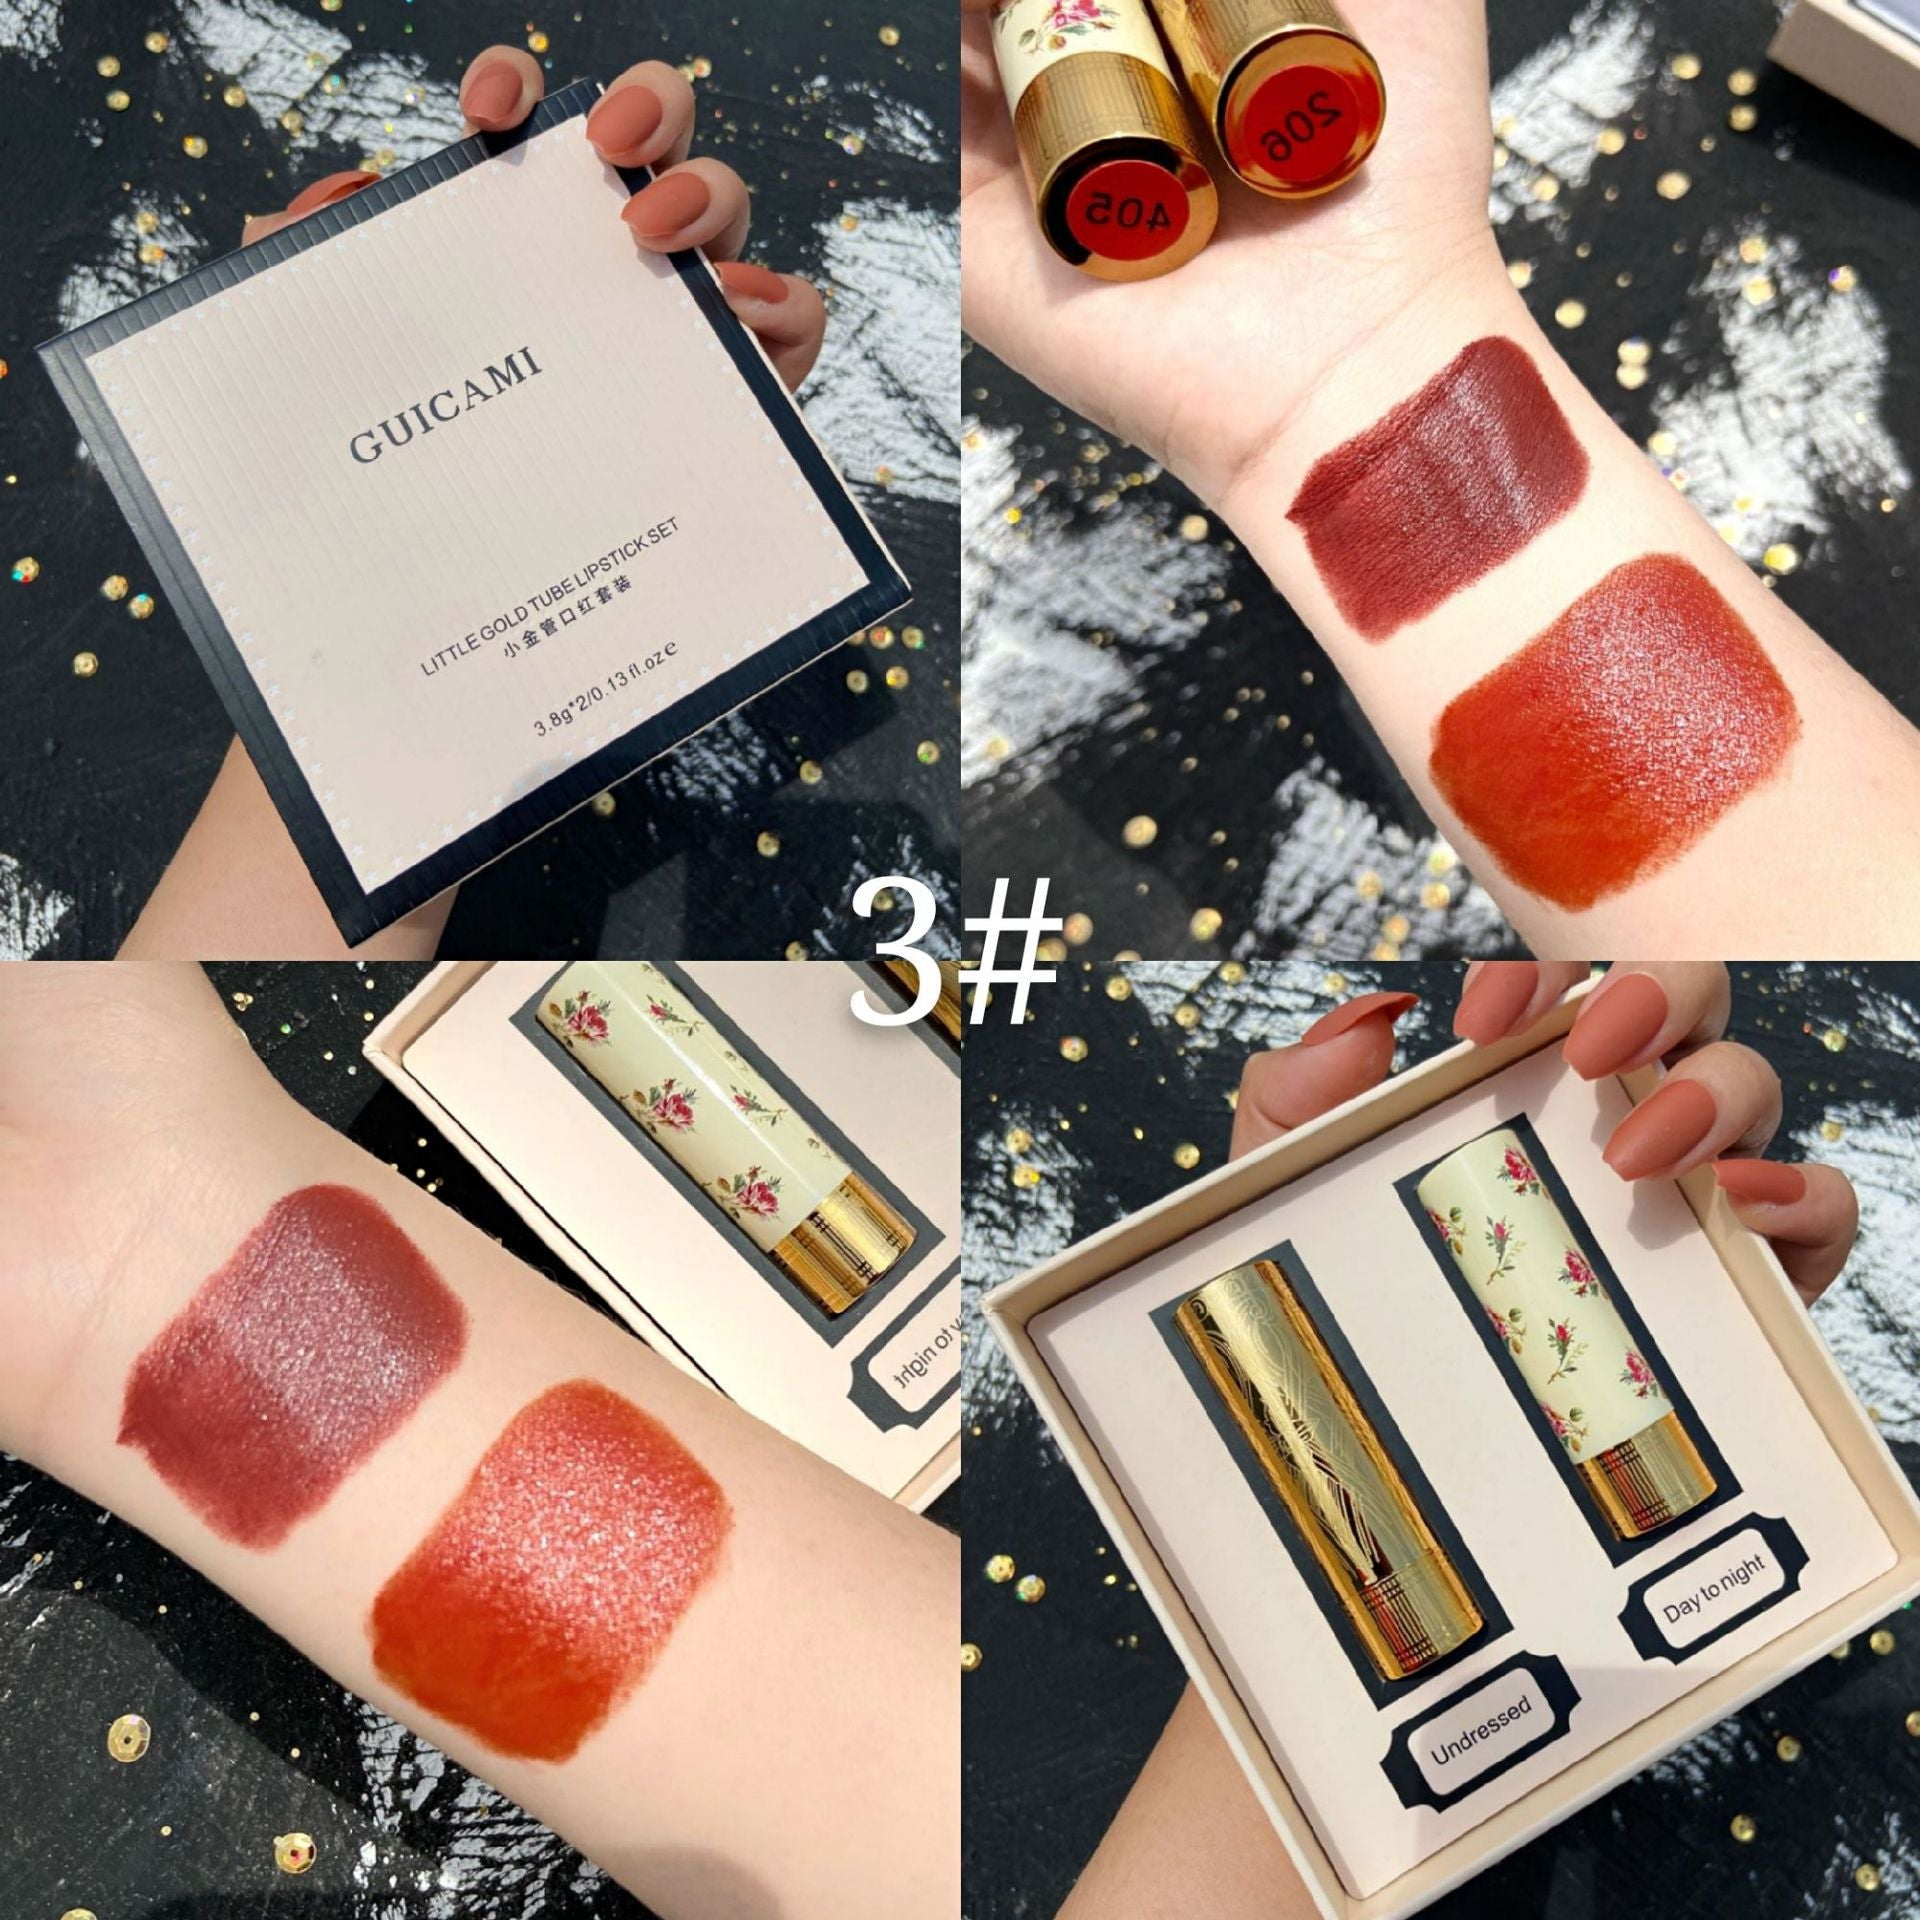 Lipstick Matte Full Professional Make Up Beauty Lips Stick Waterproof Cosmetics Matte Lipsticks Set Makeup